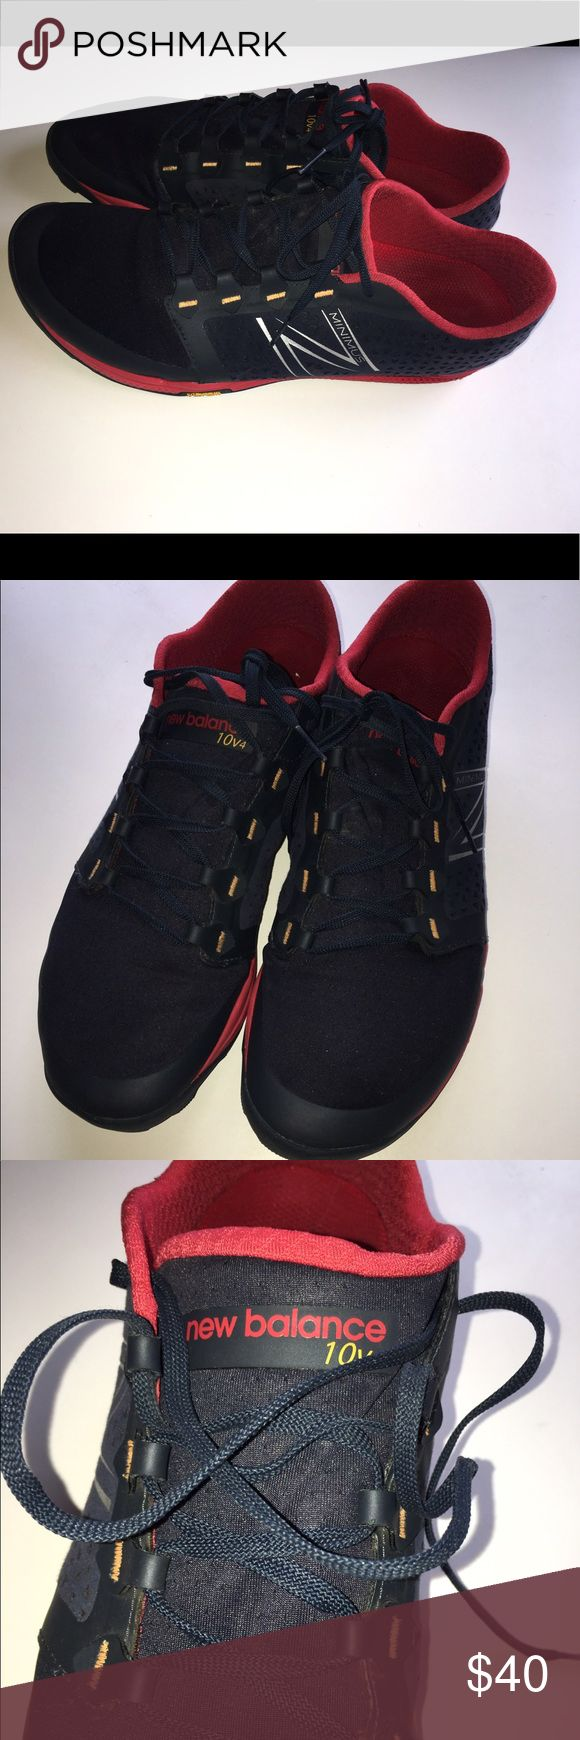 Men's New Balance Minimus shoe size 12 Men's New Balance Minimus shoe size 12 color navy blue red and yellow in very good condition! New Balance Shoes Athletic Shoes